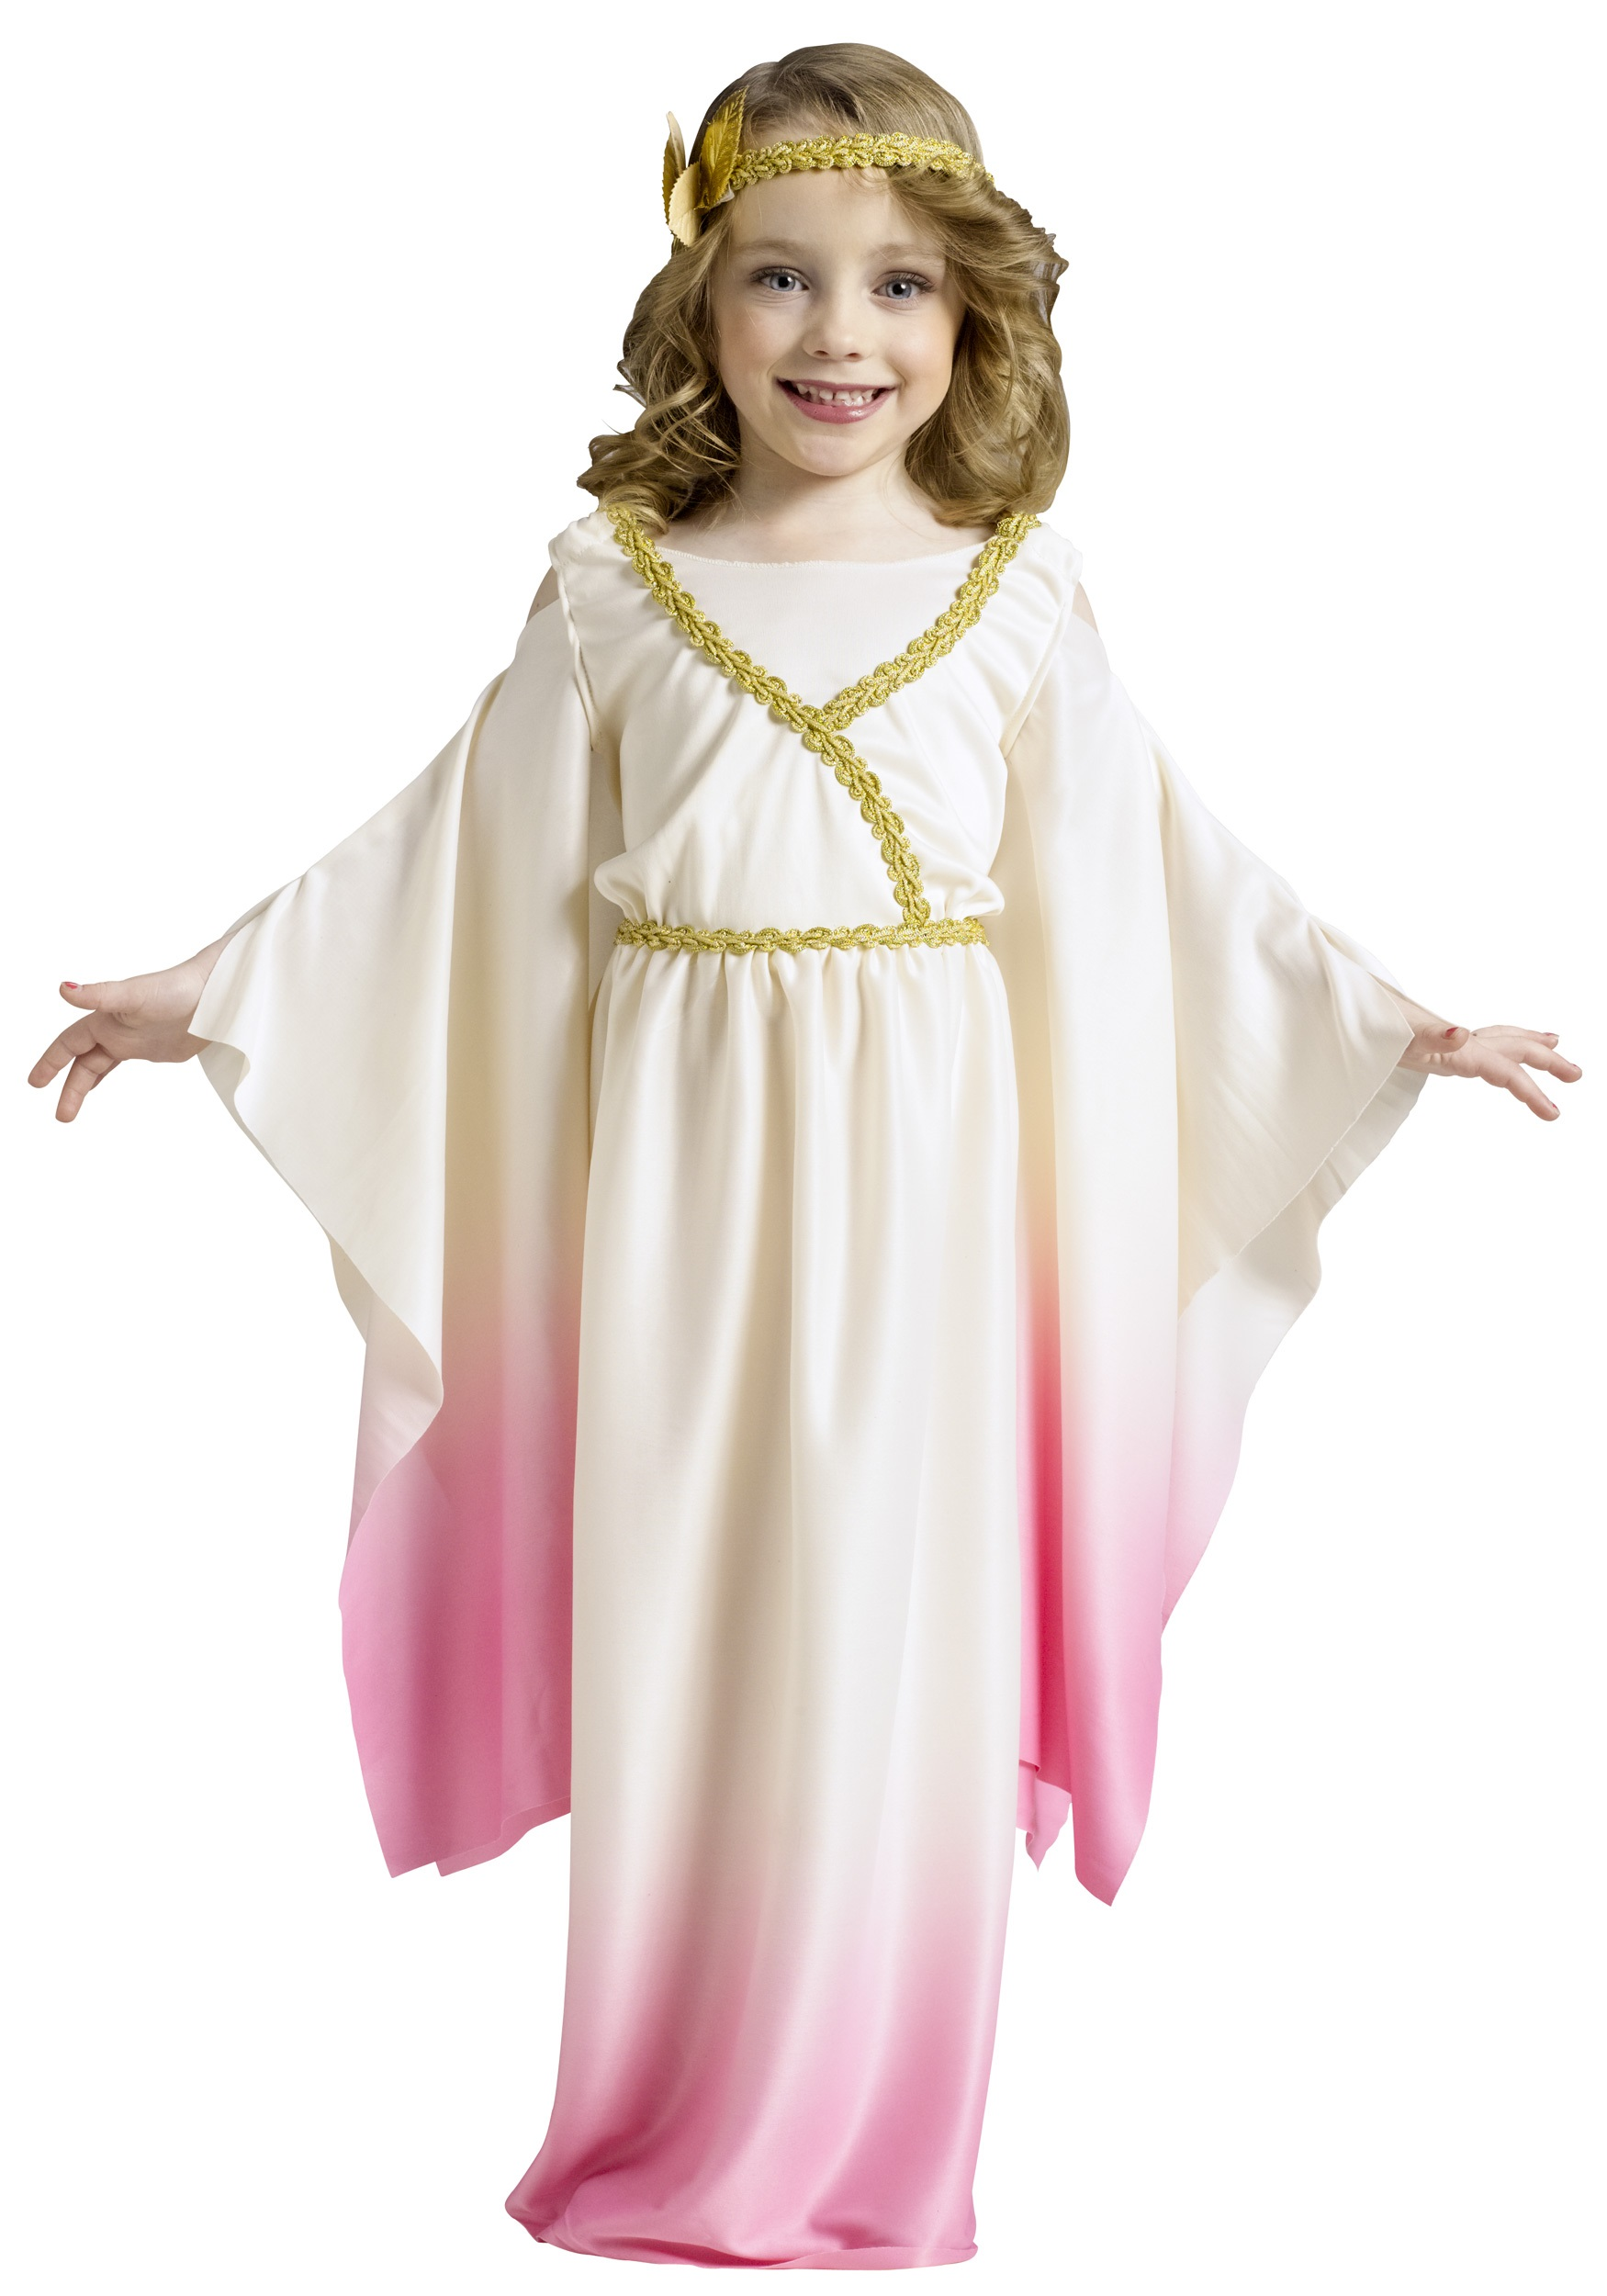 Toddler Athena Goddess Costume - Halloween Costume Ideas 2016